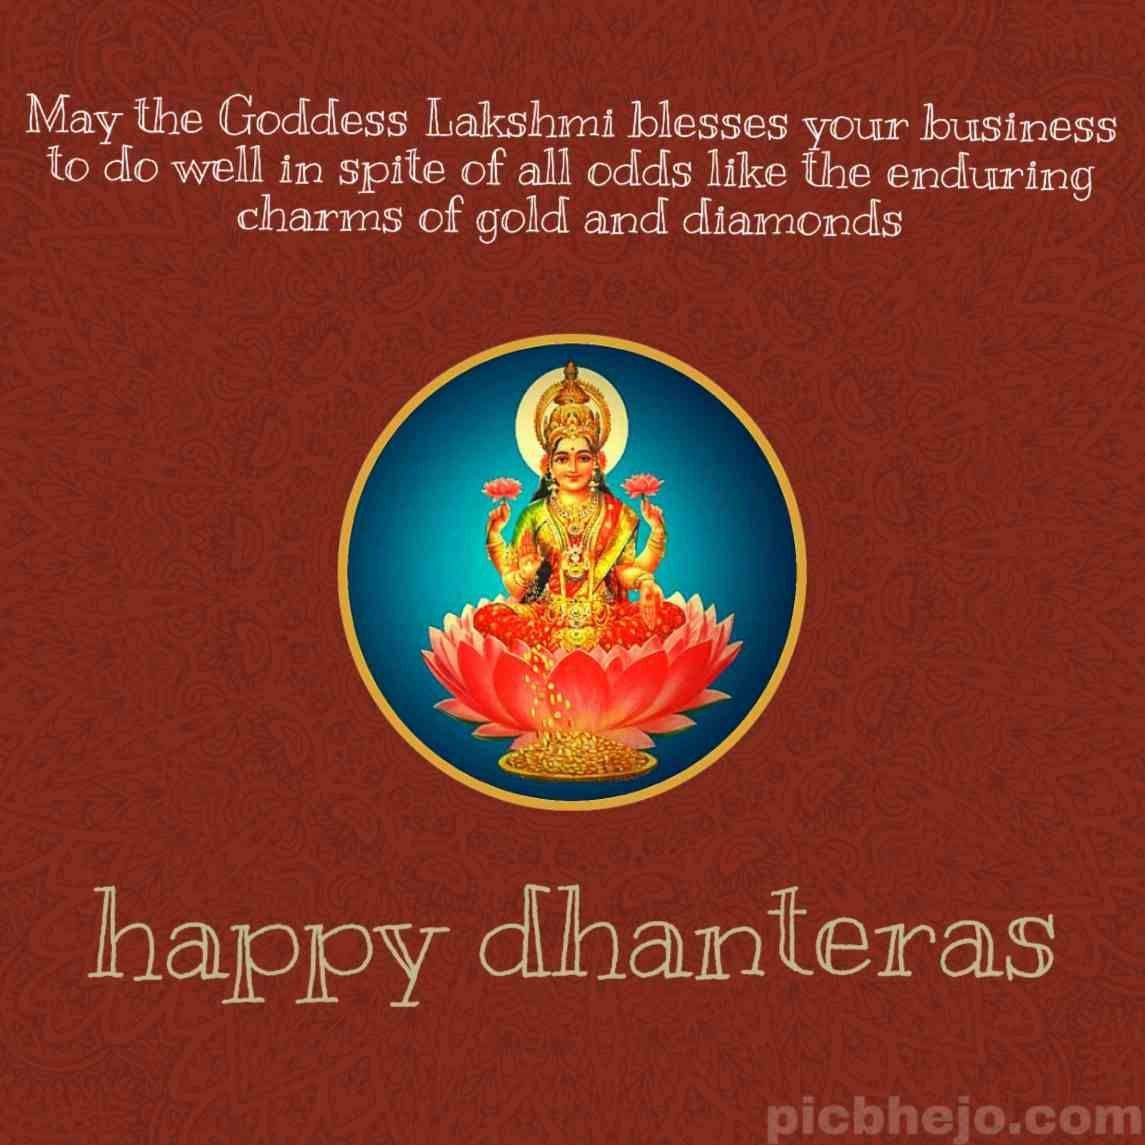 Happy Dhanteras 2019, happy dhanteras images for whatsapp, Happy Dhantarus Pic 2019, Dhanters picture collection, Dhanteras Wishes @picbhejo.com. #dhanteraswishes Happy Dhanteras 2019, happy dhanteras images for whatsapp, Happy Dhantarus Pic 2019, Dhanters picture collection, Dhanteras Wishes @picbhejo.com. #happydhanteras Happy Dhanteras 2019, happy dhanteras images for whatsapp, Happy Dhantarus Pic 2019, Dhanters picture collection, Dhanteras Wishes @picbhejo.com. #dhanteraswishes Happy Dhante #dhanteraswishes